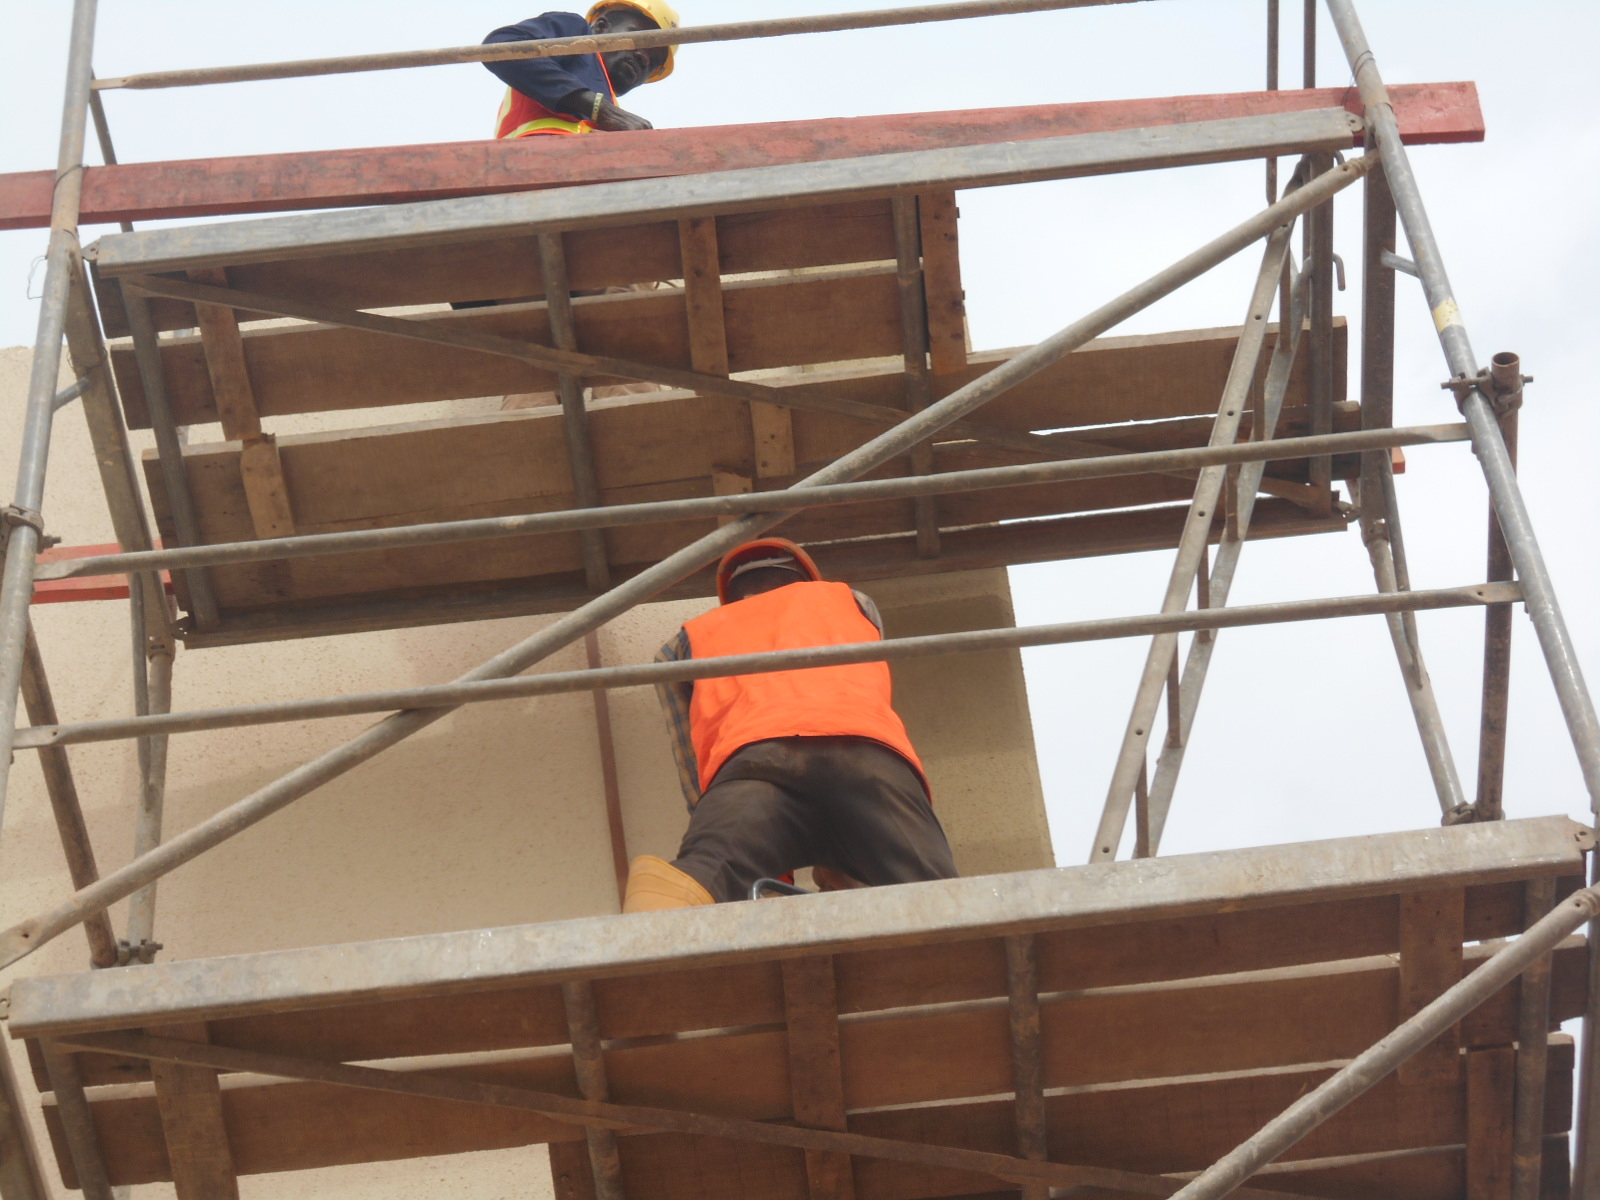 RUNING OF COPPER TAPE AT JABI SHOPPING MALL, ABUJA